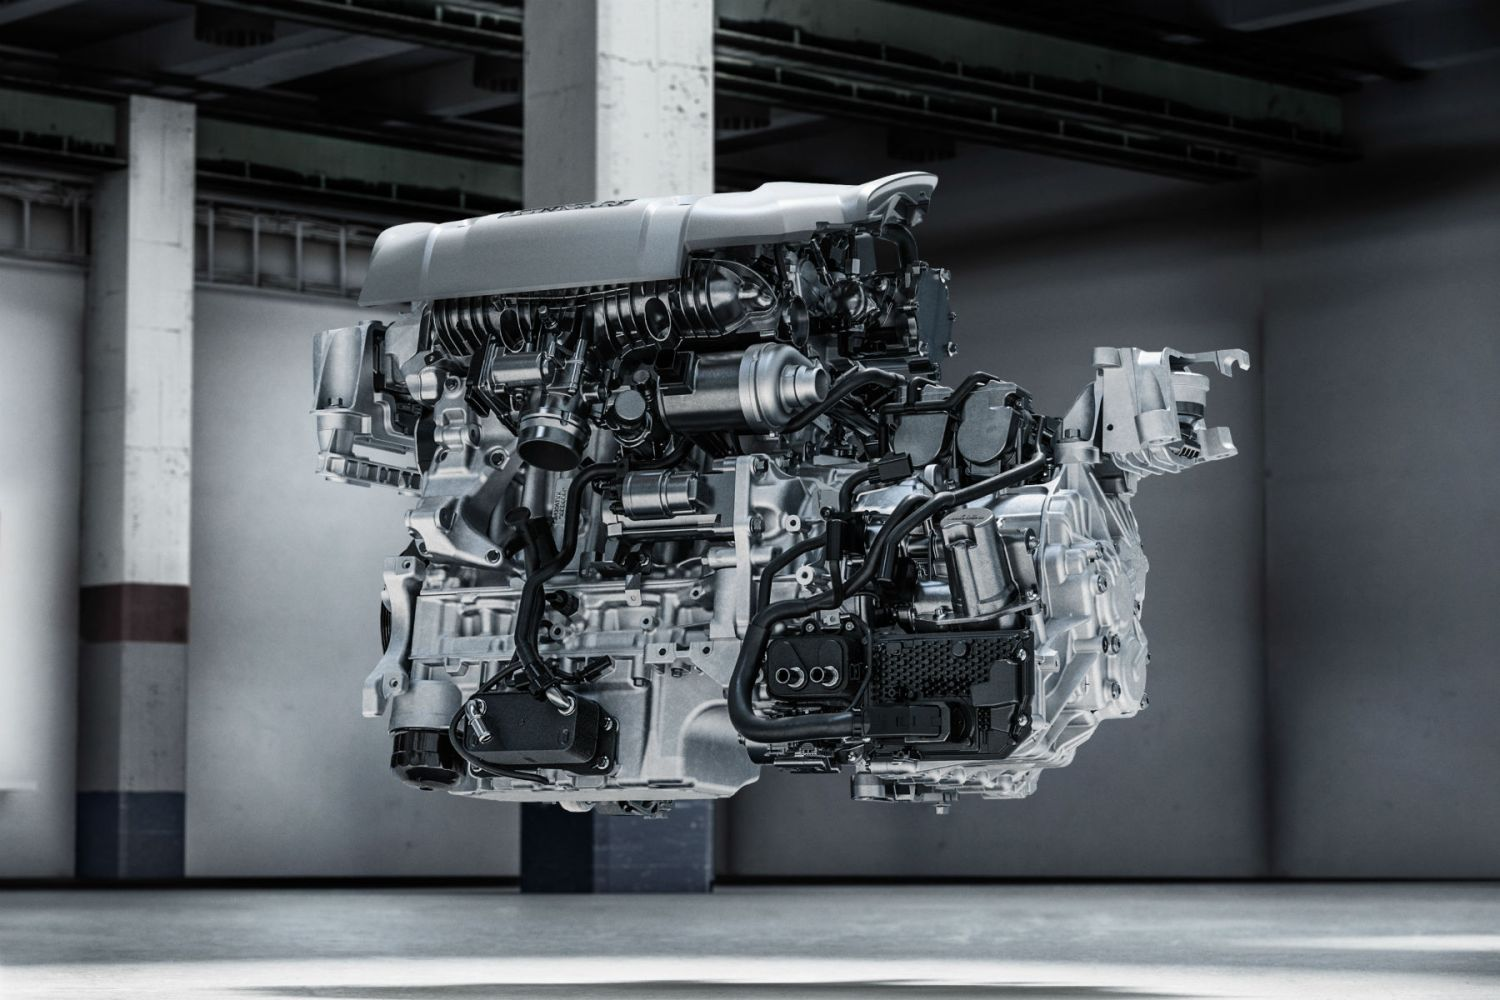 What engines will Lynk & Co use?